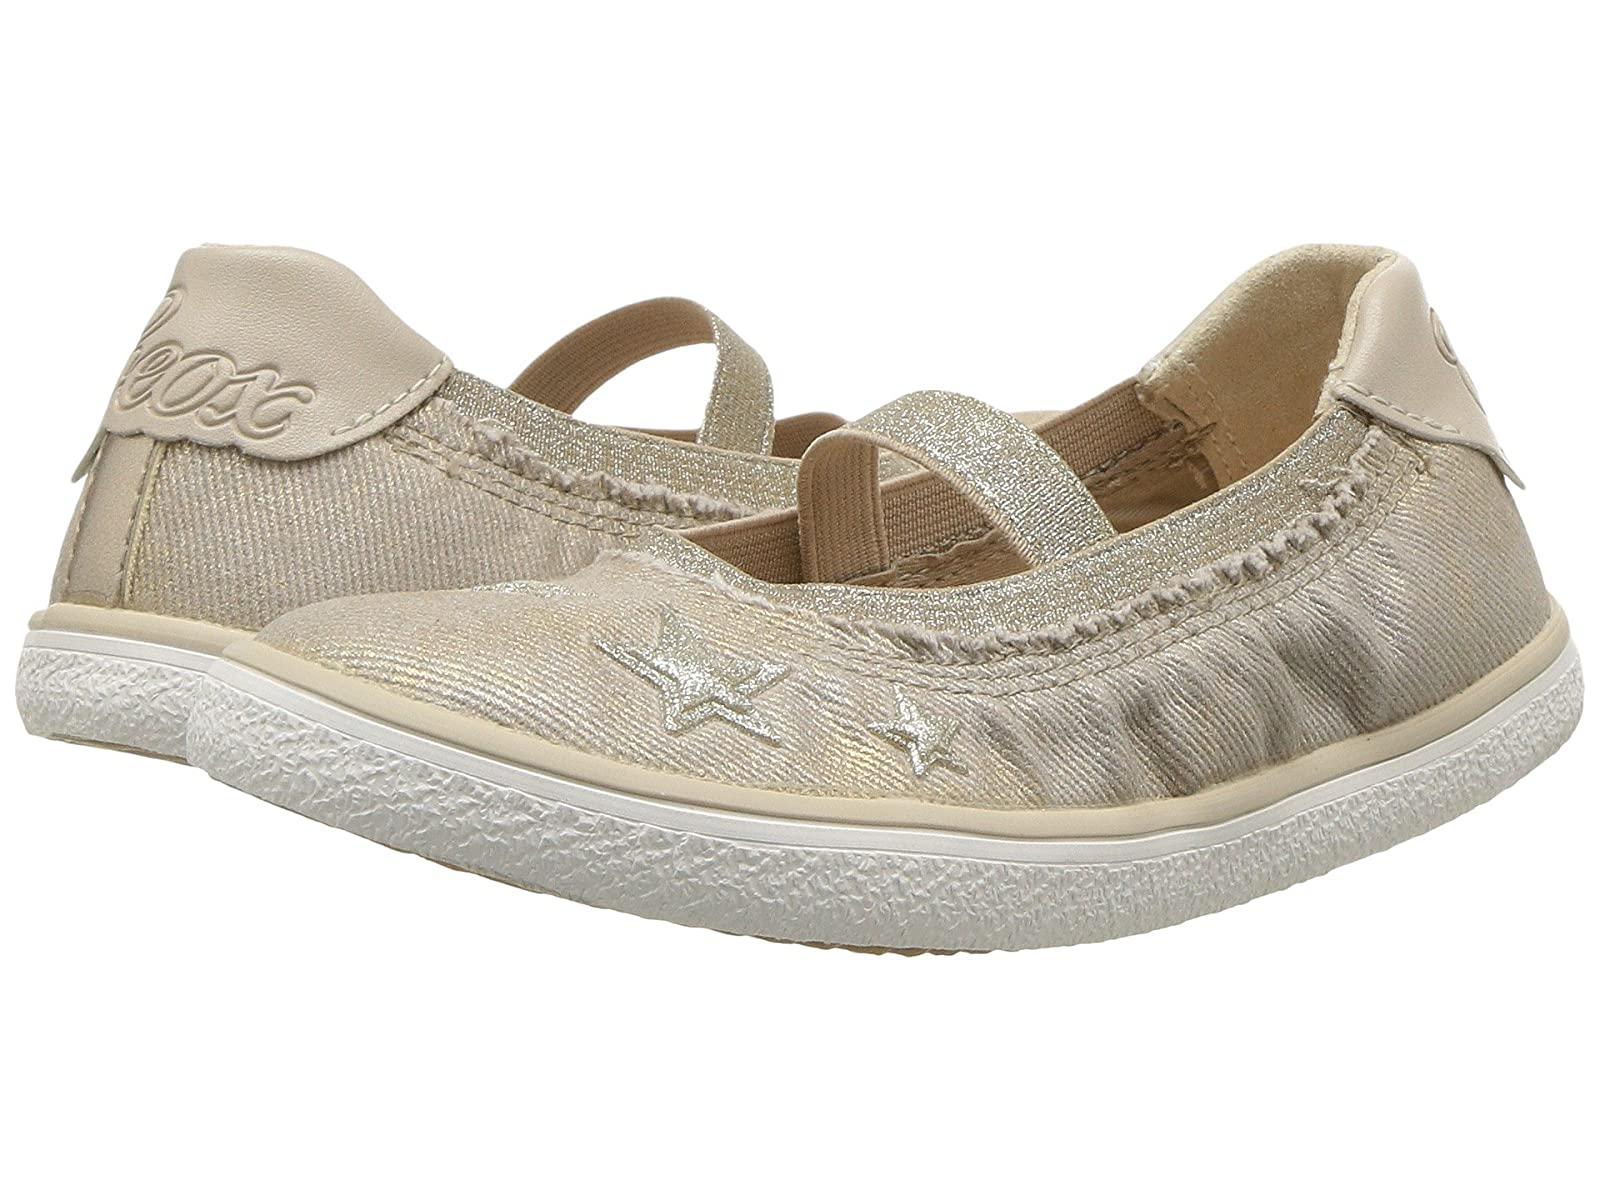 Geox Kids Kilwi 16 (Toddler/Little Kid)Cheap and distinctive eye-catching shoes